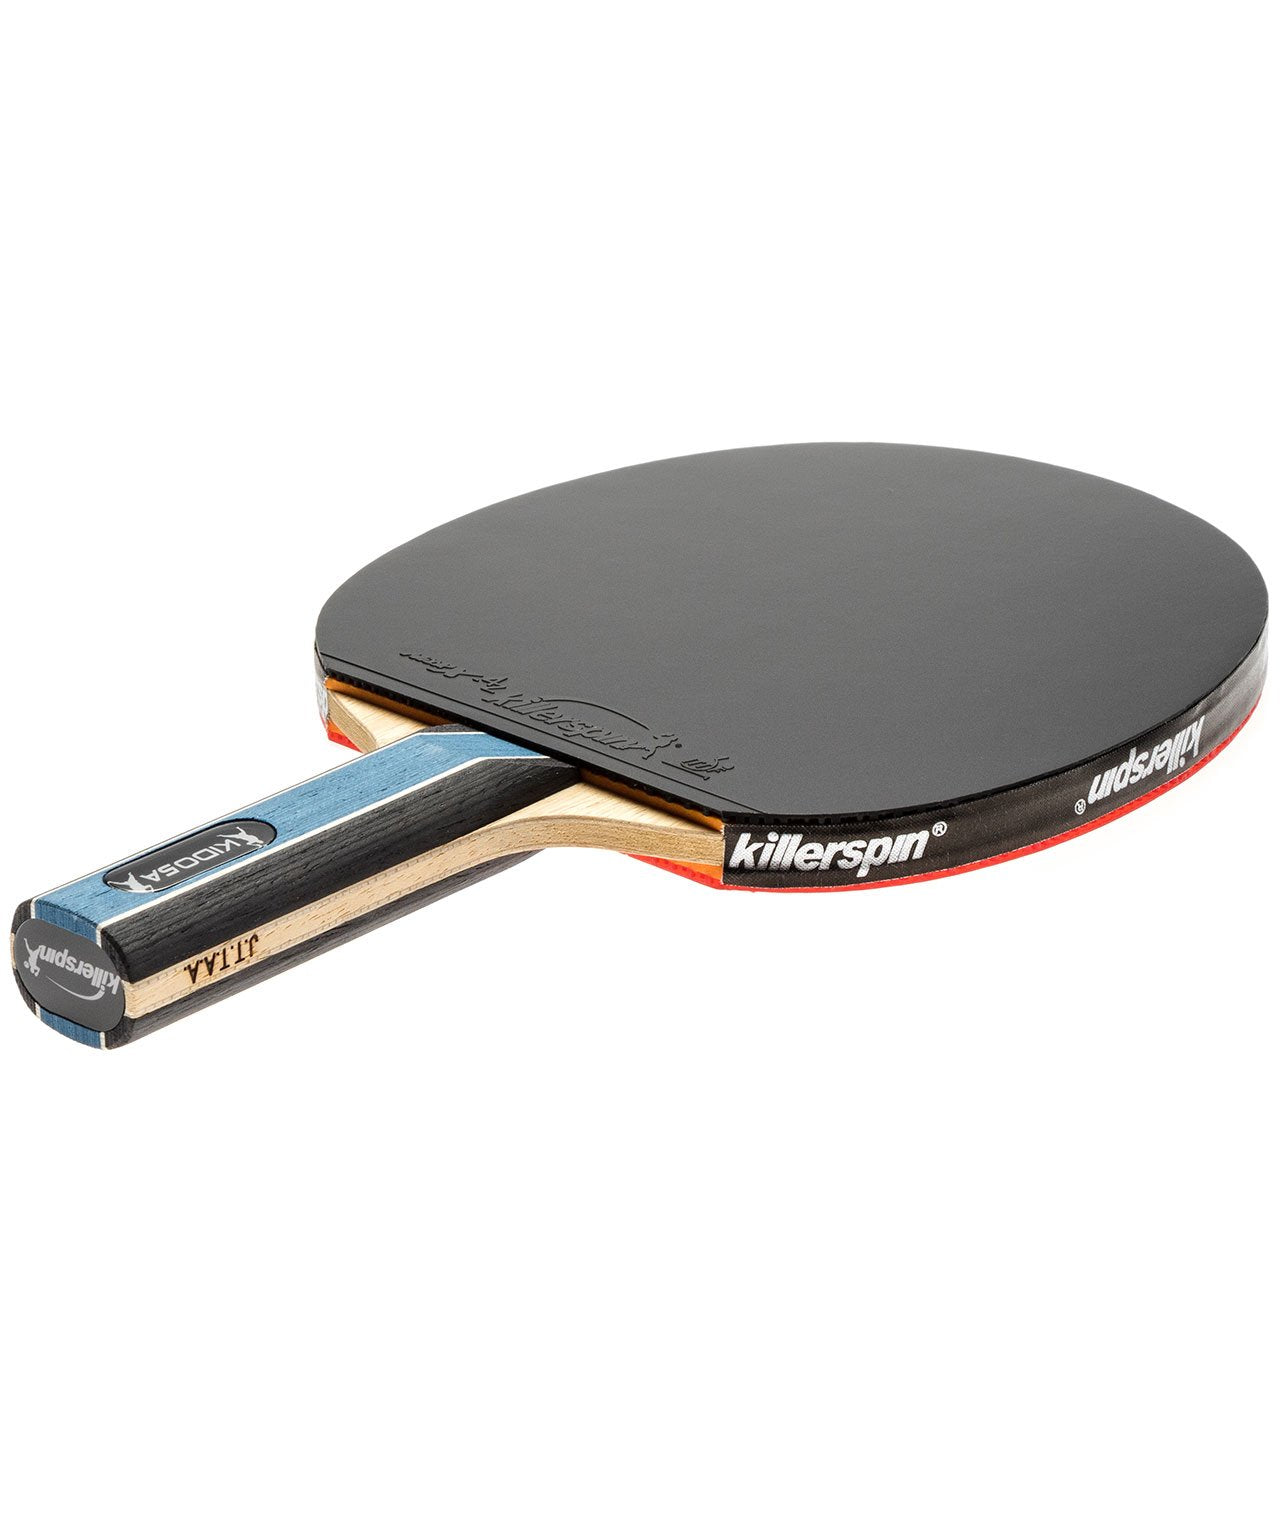 Killerspin Ping Pong Paddle Kido 5A RTG - Straight Black Rubber